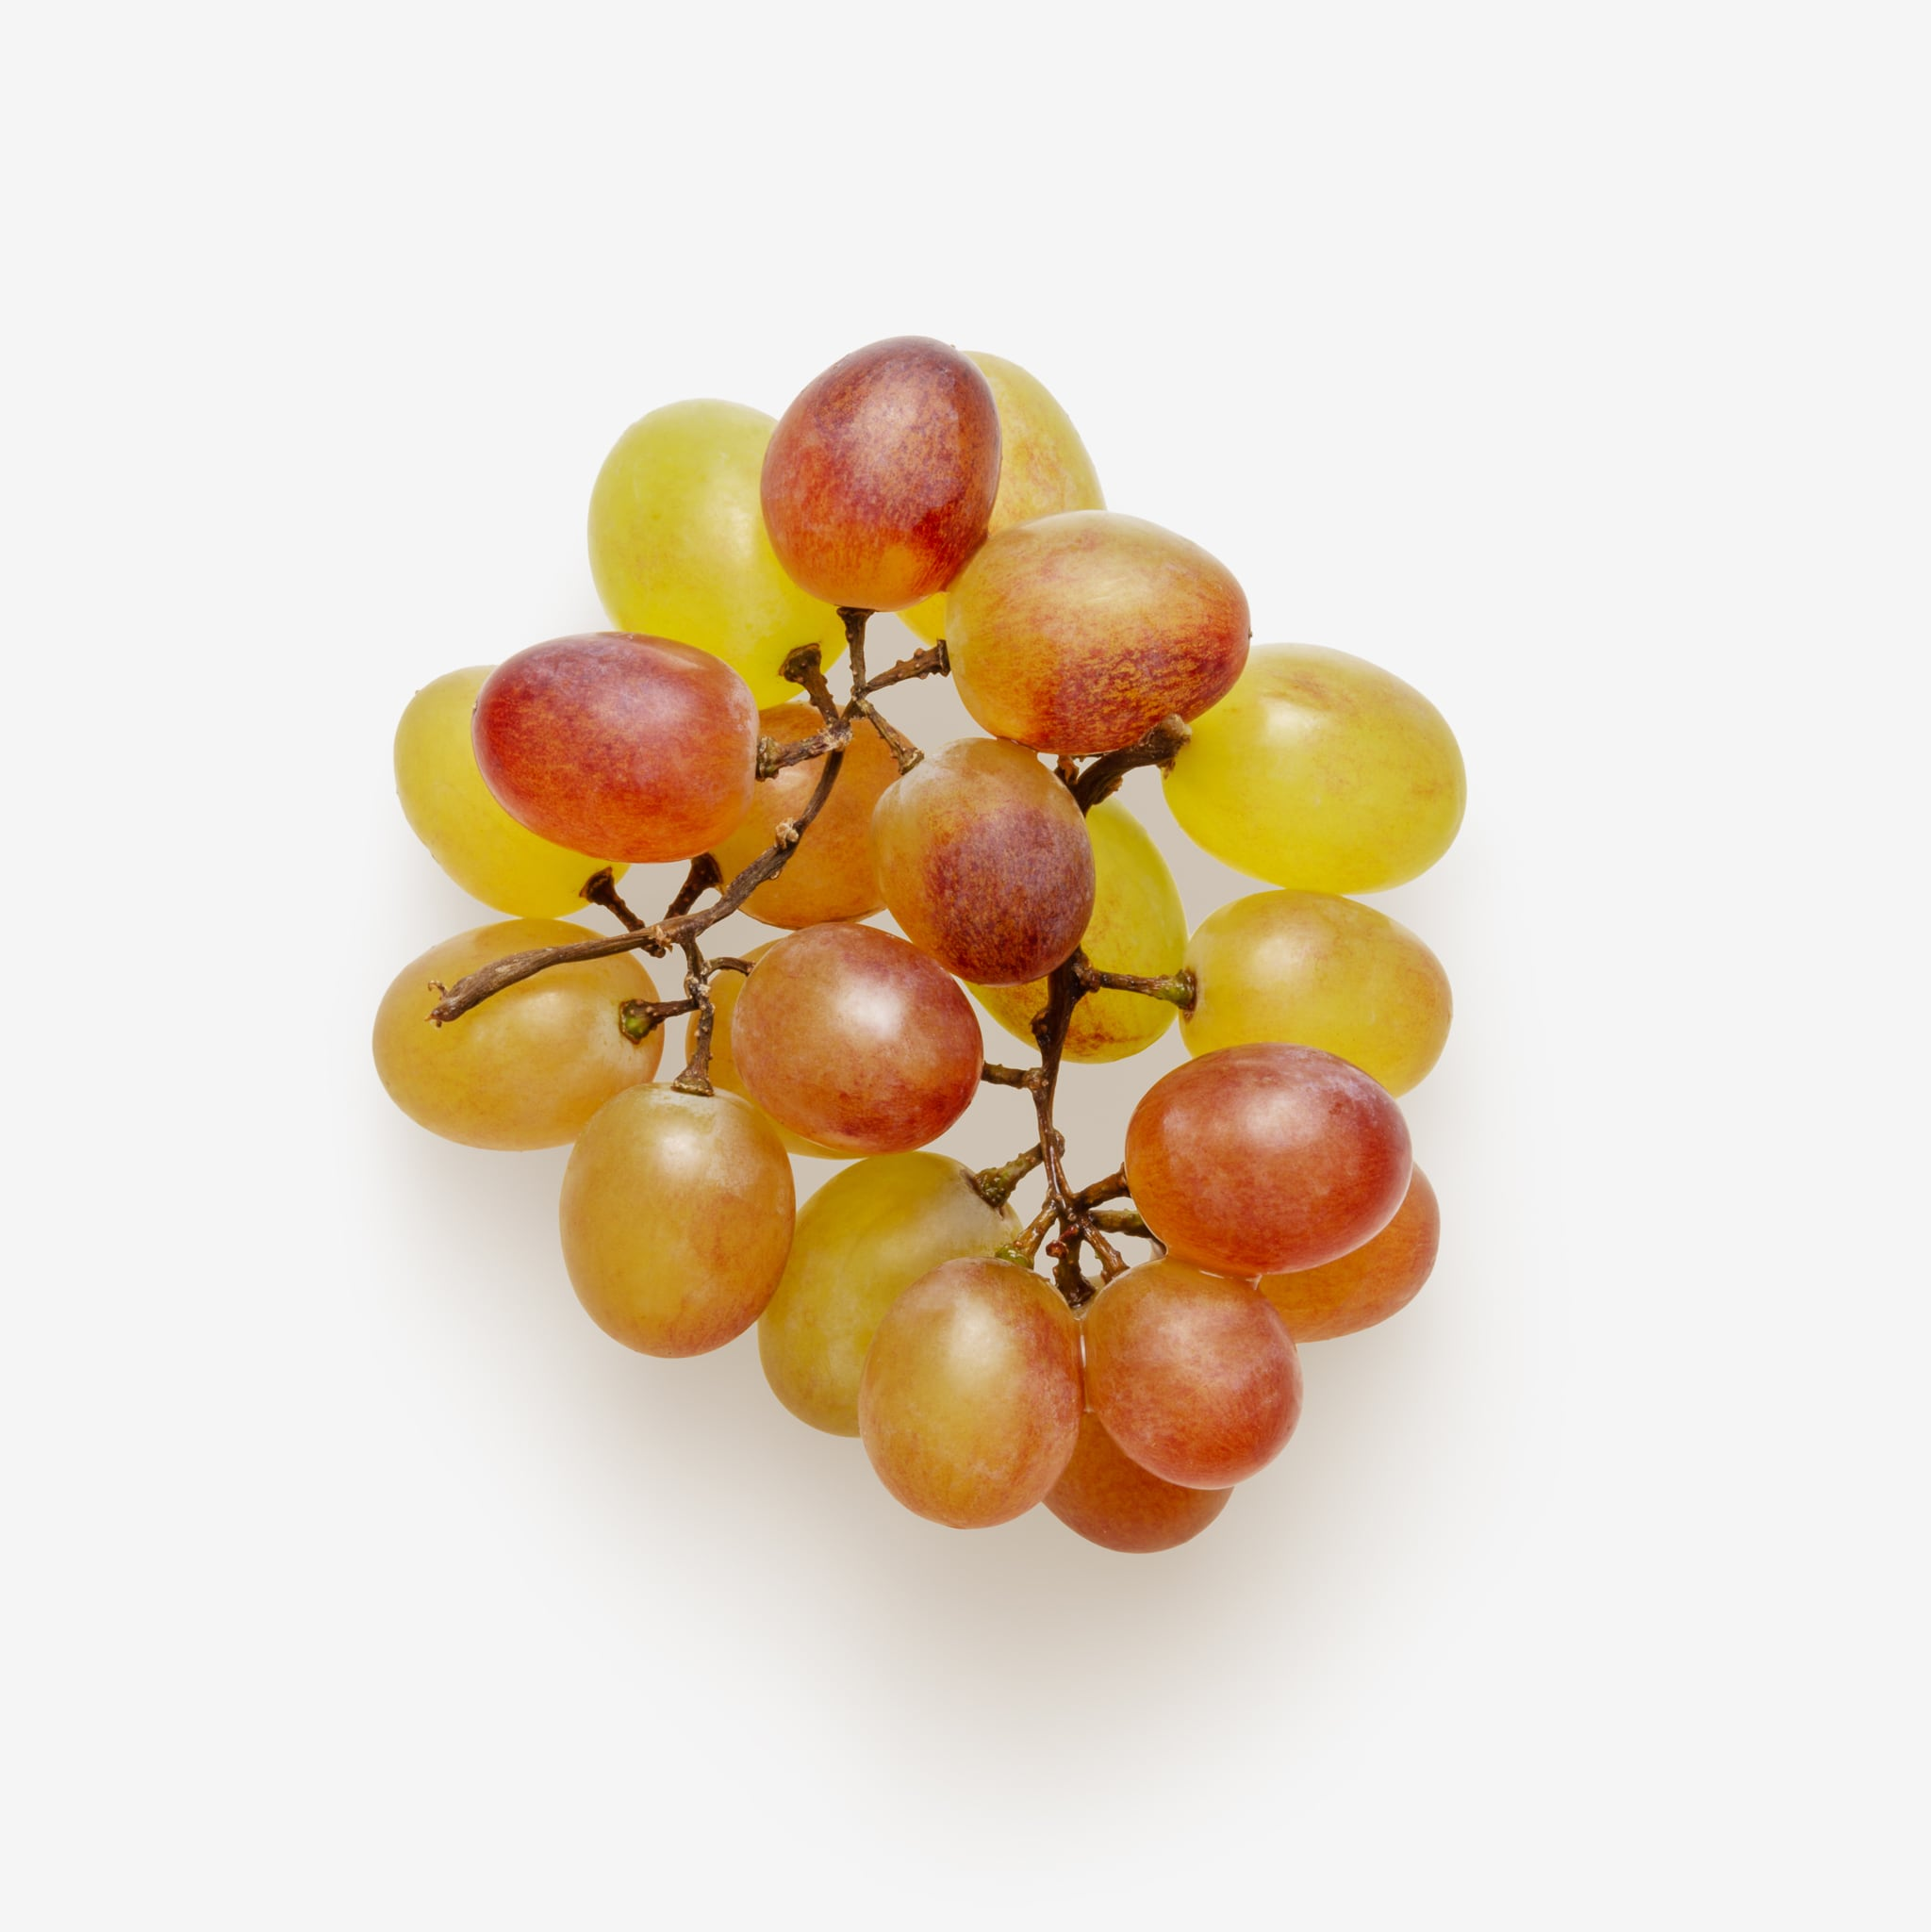 Bunch of grapes PSD image on transparent background